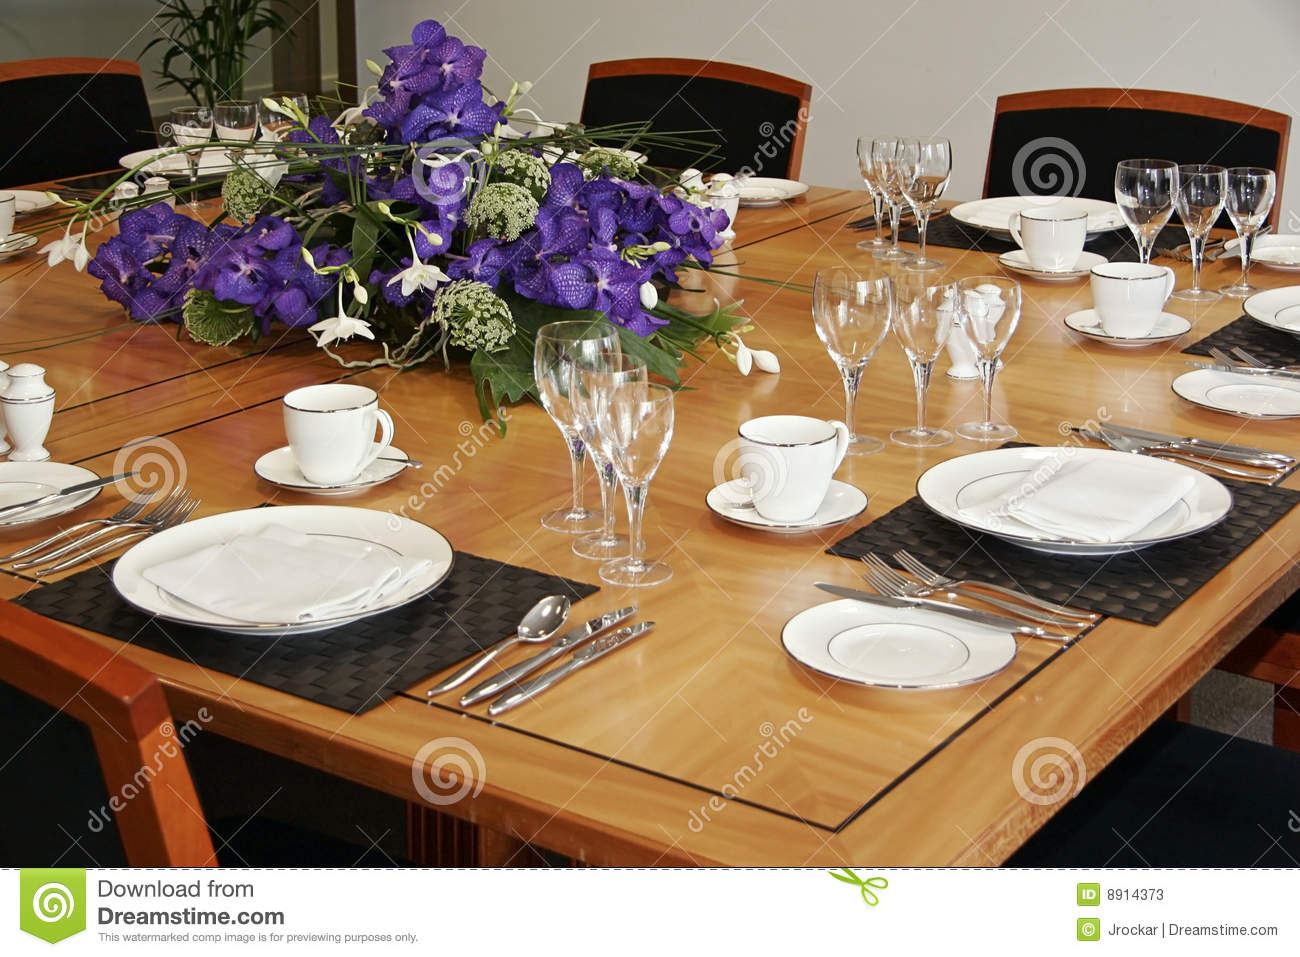 Restaurant table setup with cut flowers stock image for Restaurant table menu